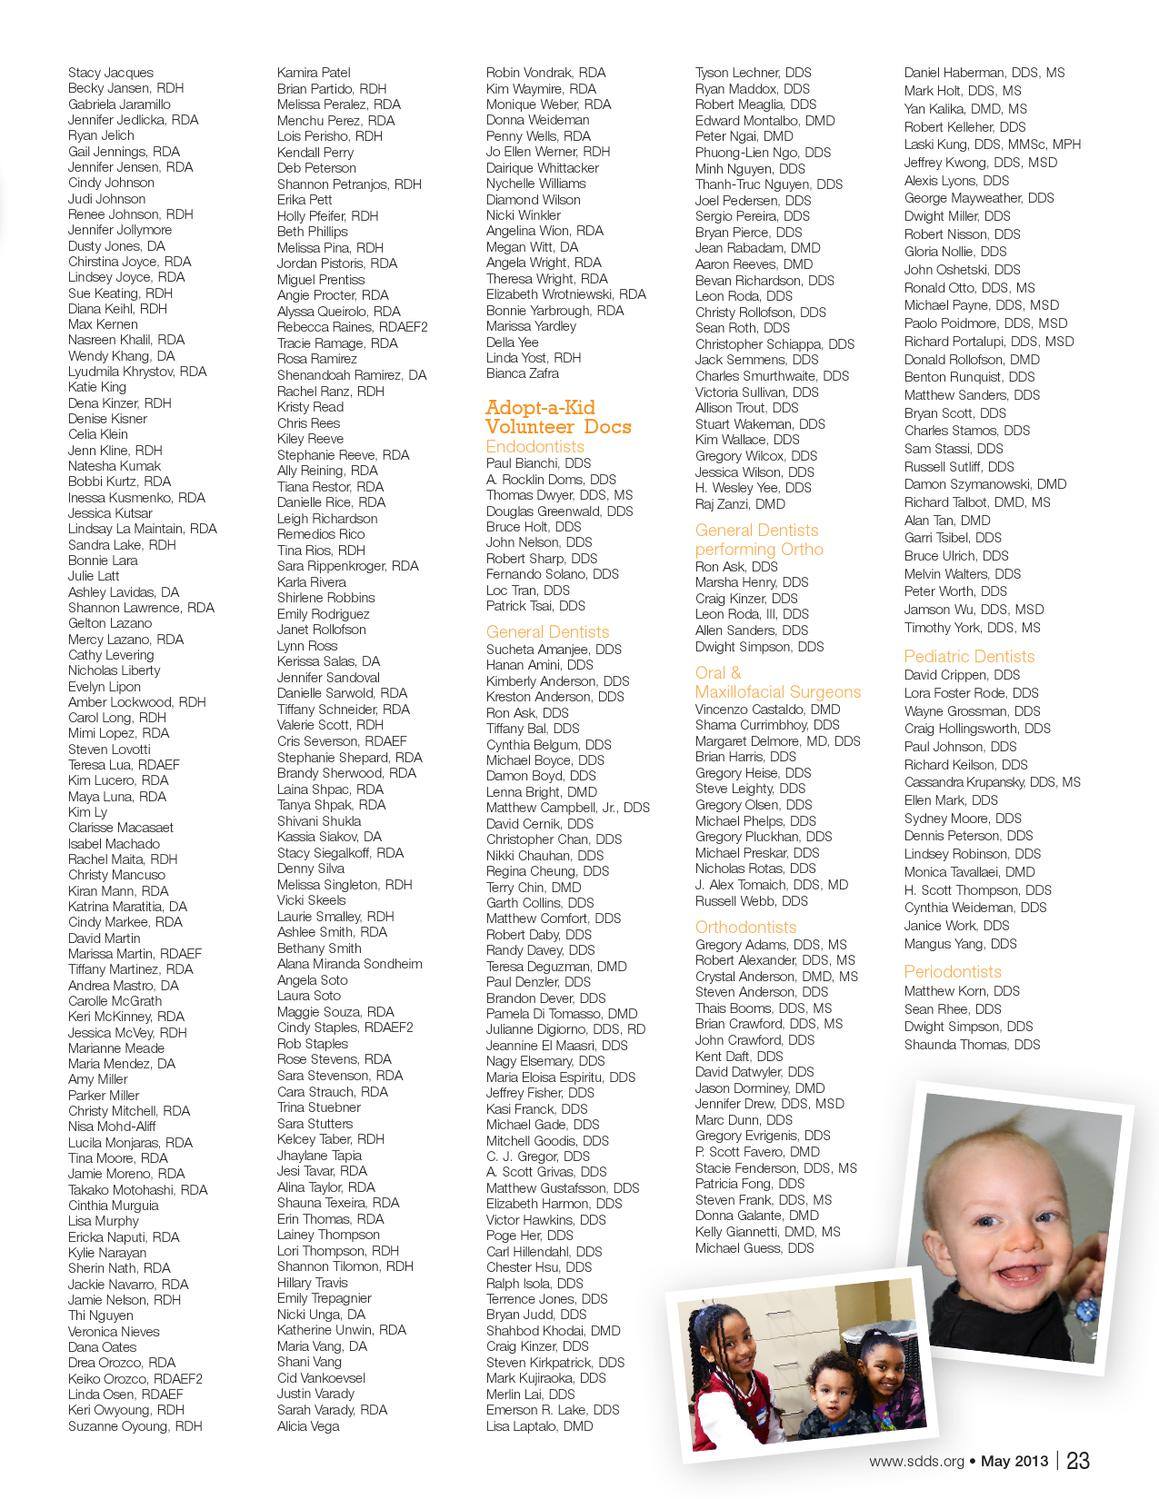 2013 nugget by sacramento district dental society sdds page 2013 nugget by sacramento district dental society sdds page 23 issuu